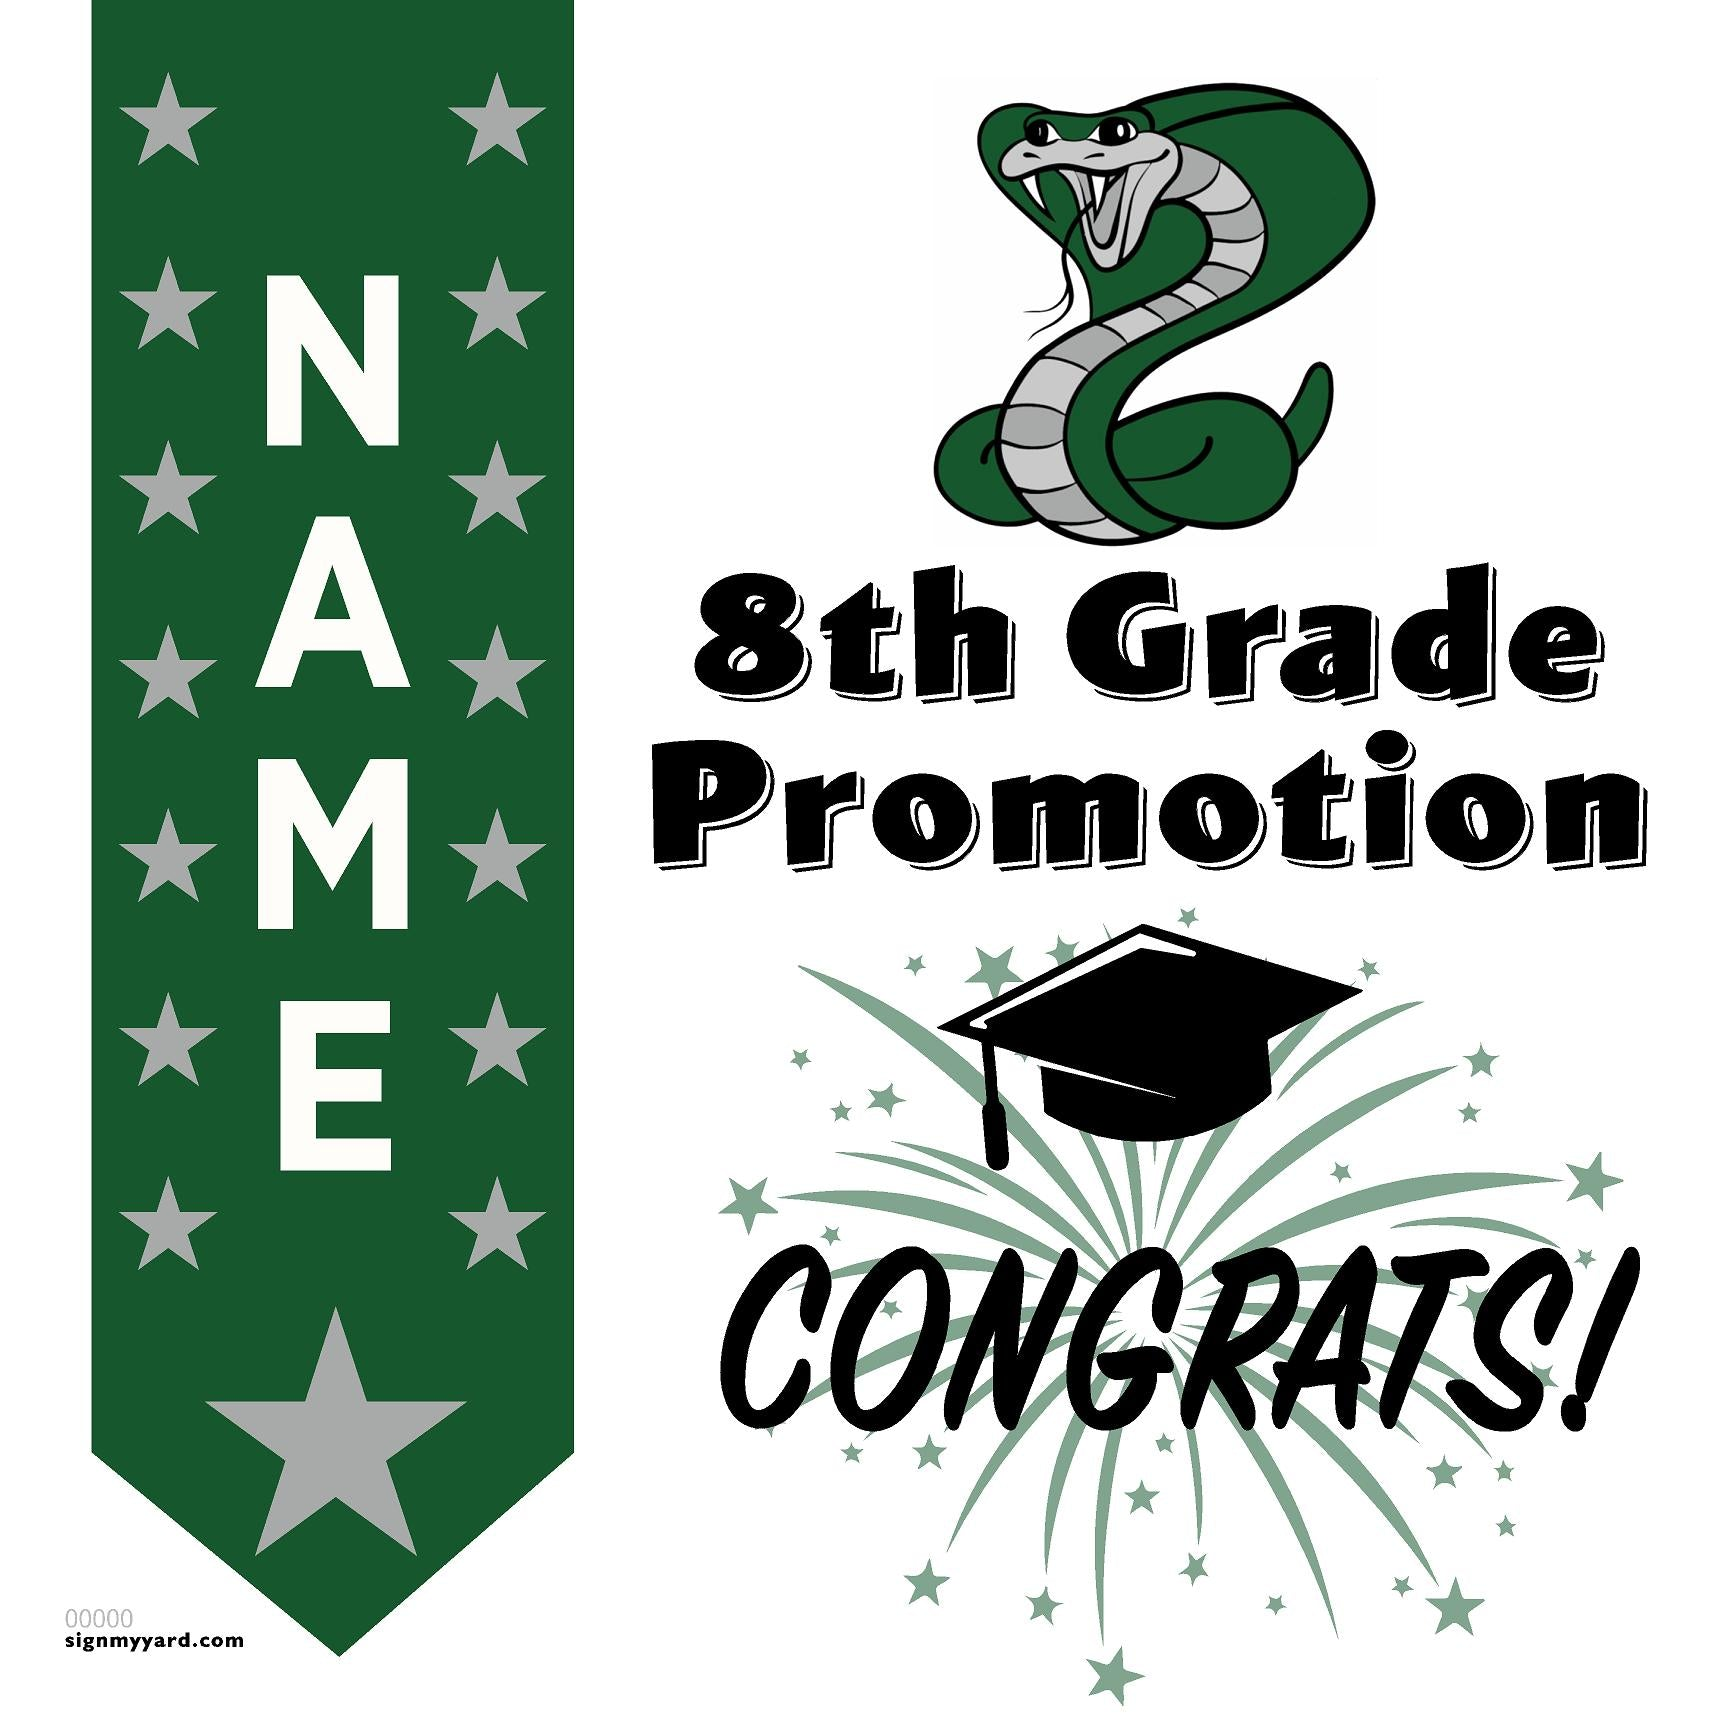 Castillero Middle School 8th Grade Promotion 24x24 #shineon2024 Yard Sign (Option B)